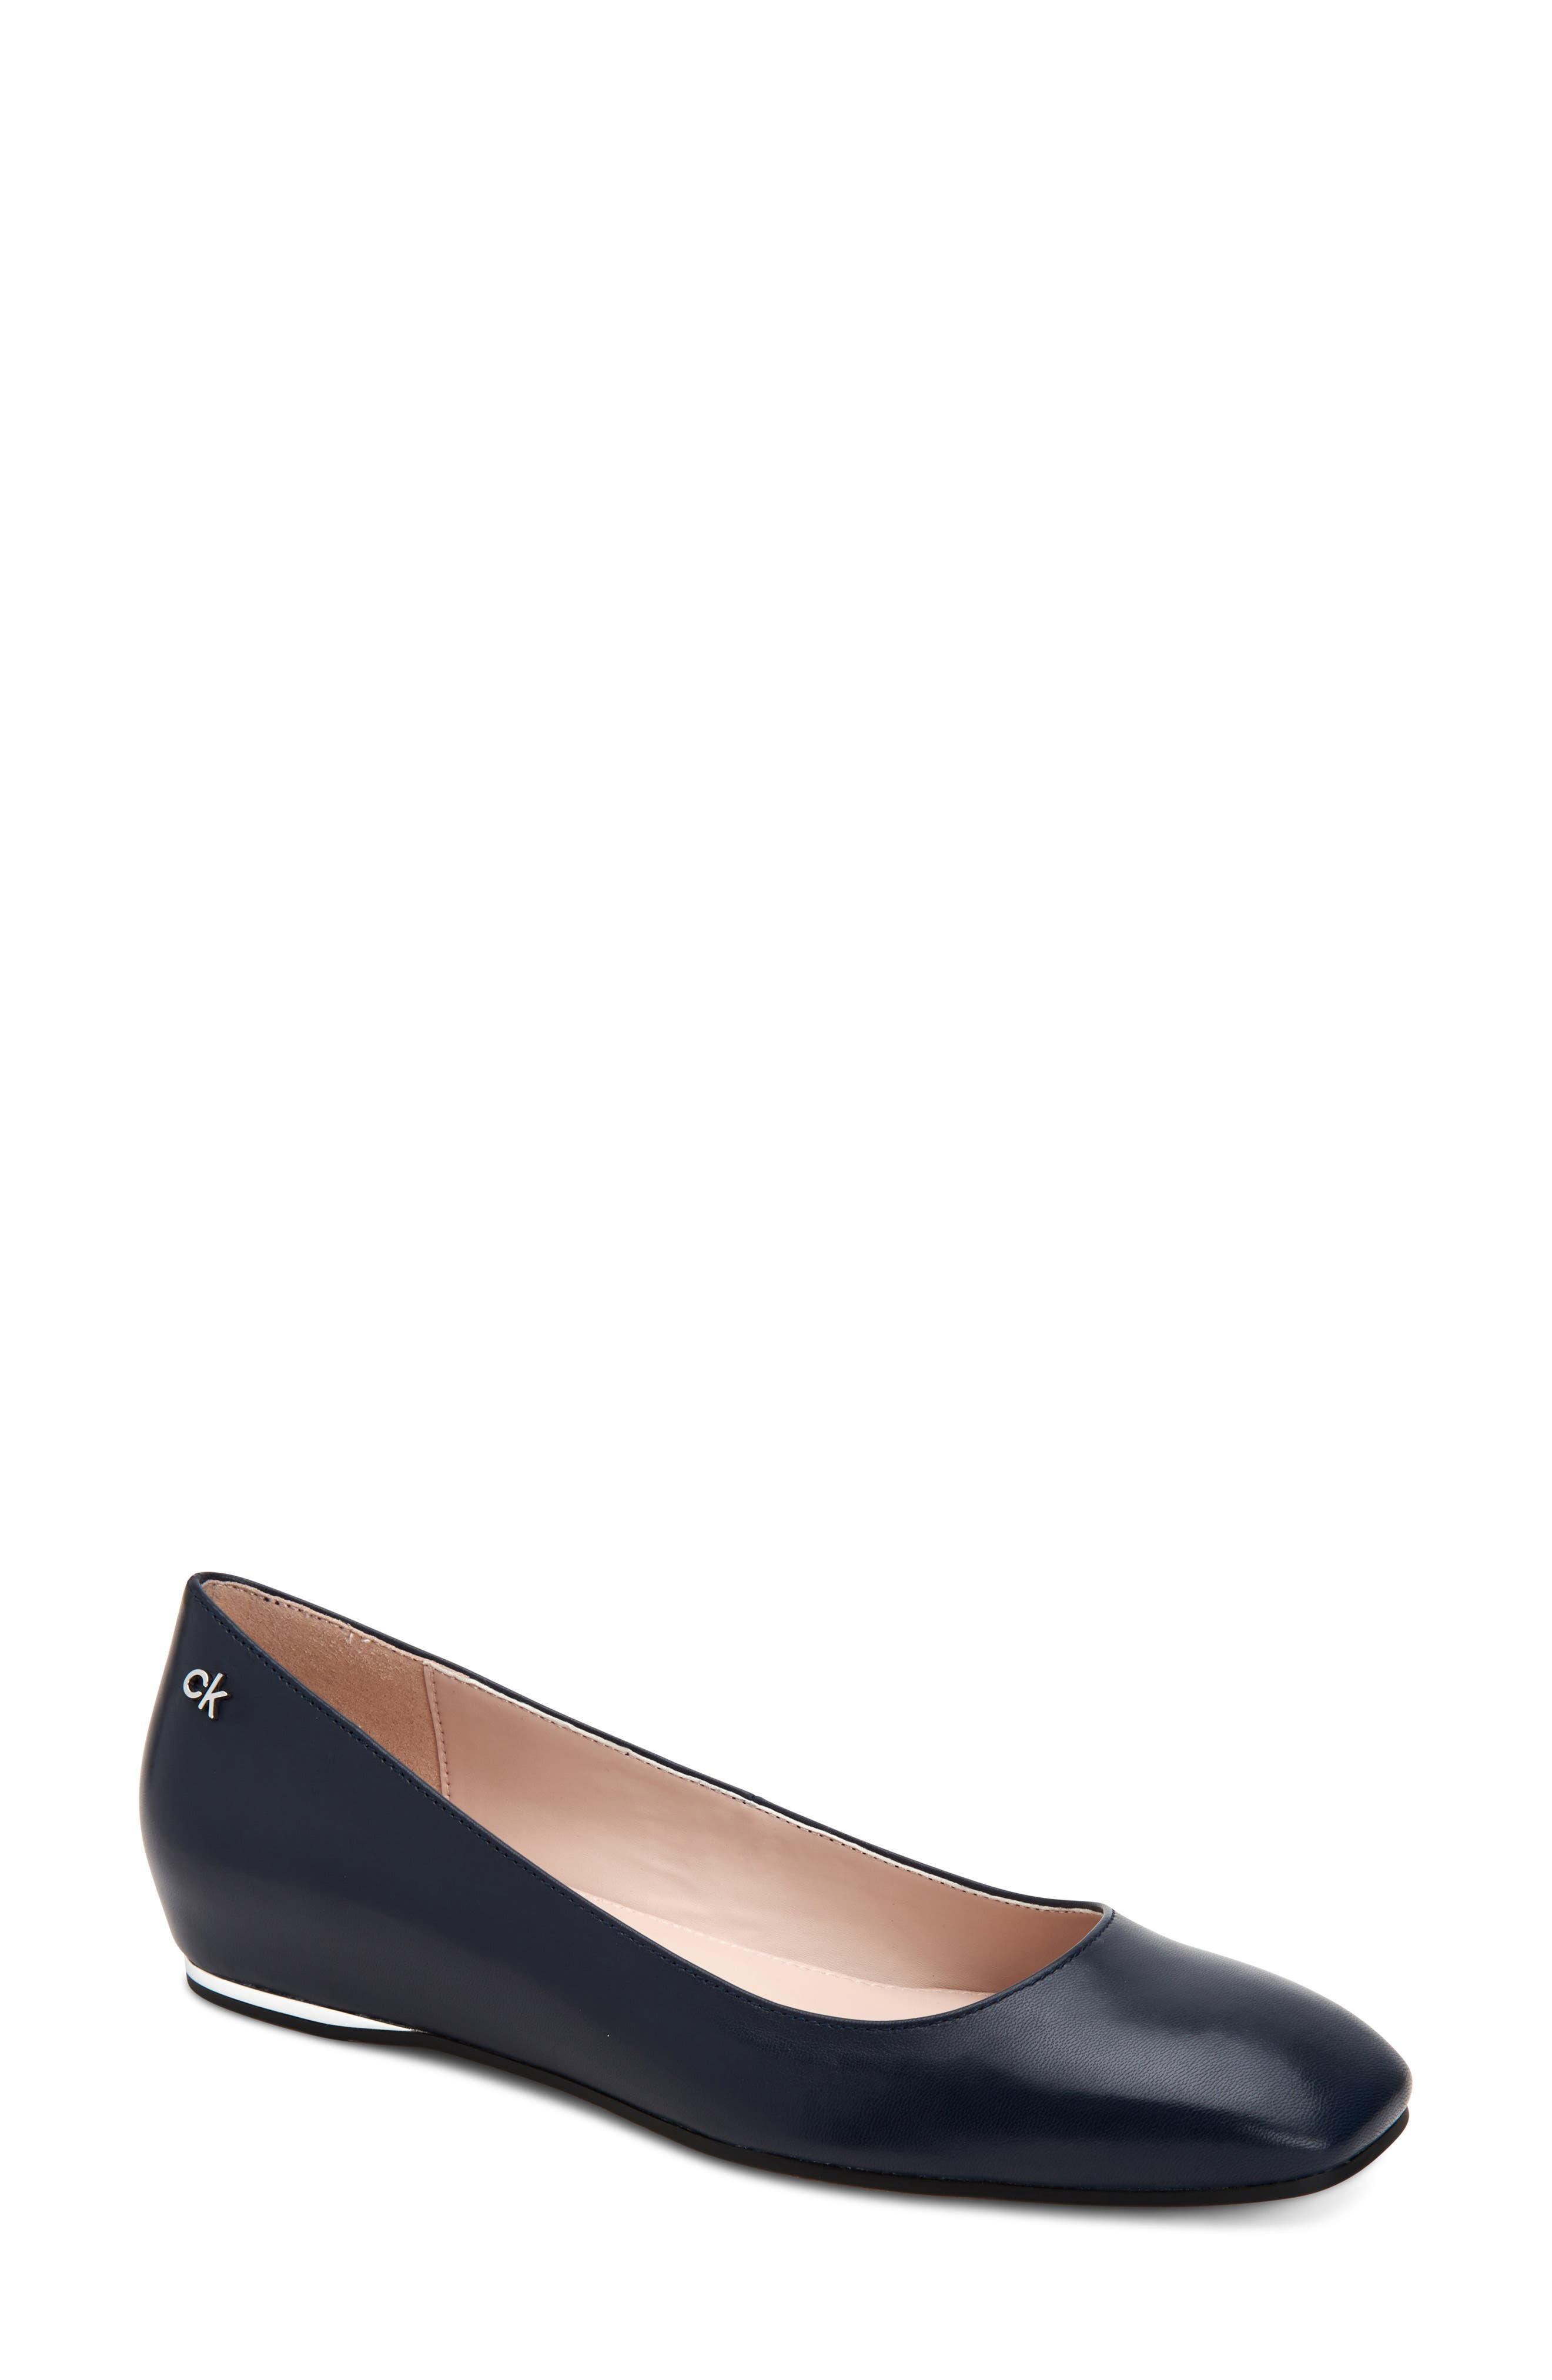 Available in sizes 8,9.5,11 Girls Black Ballet Pumps